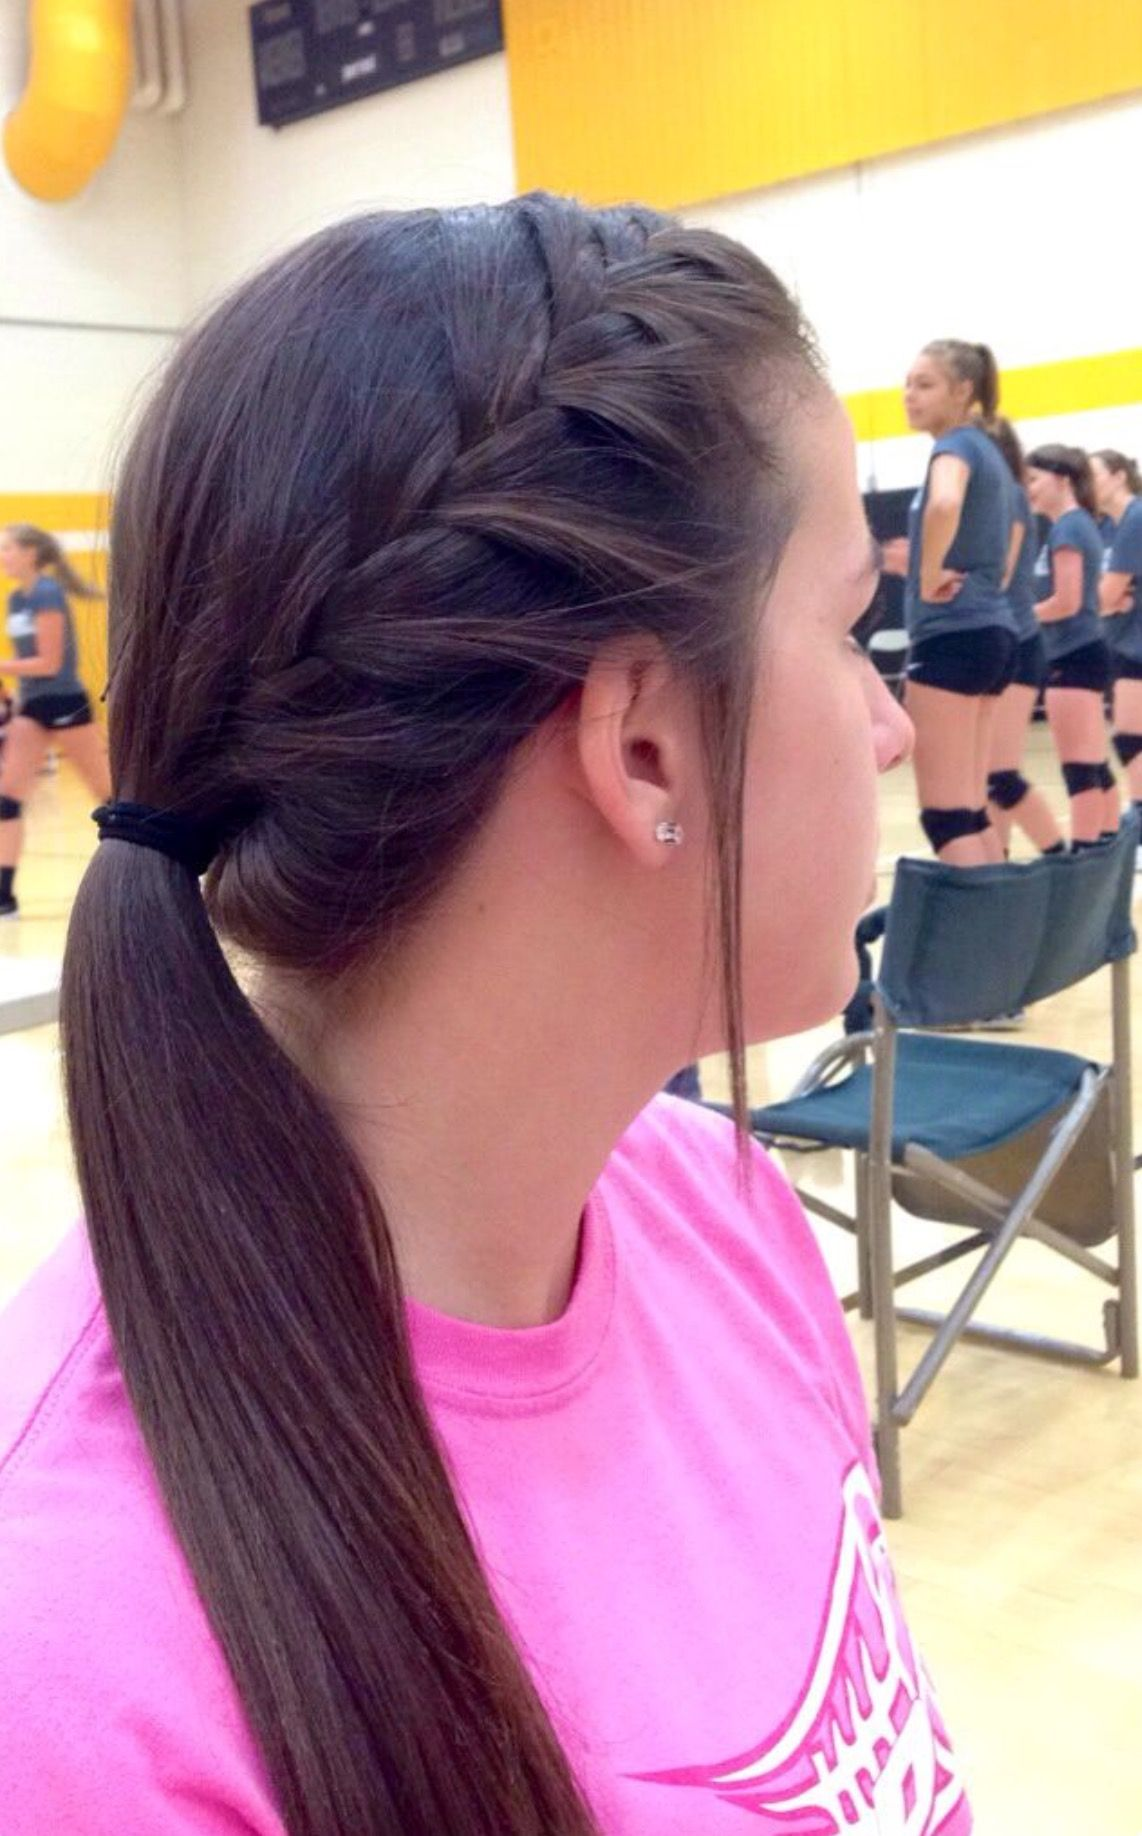 I Wish I Could Do That W My Hair Volleyball Hairstyles Sports Hairstyles Sporty Hairstyles